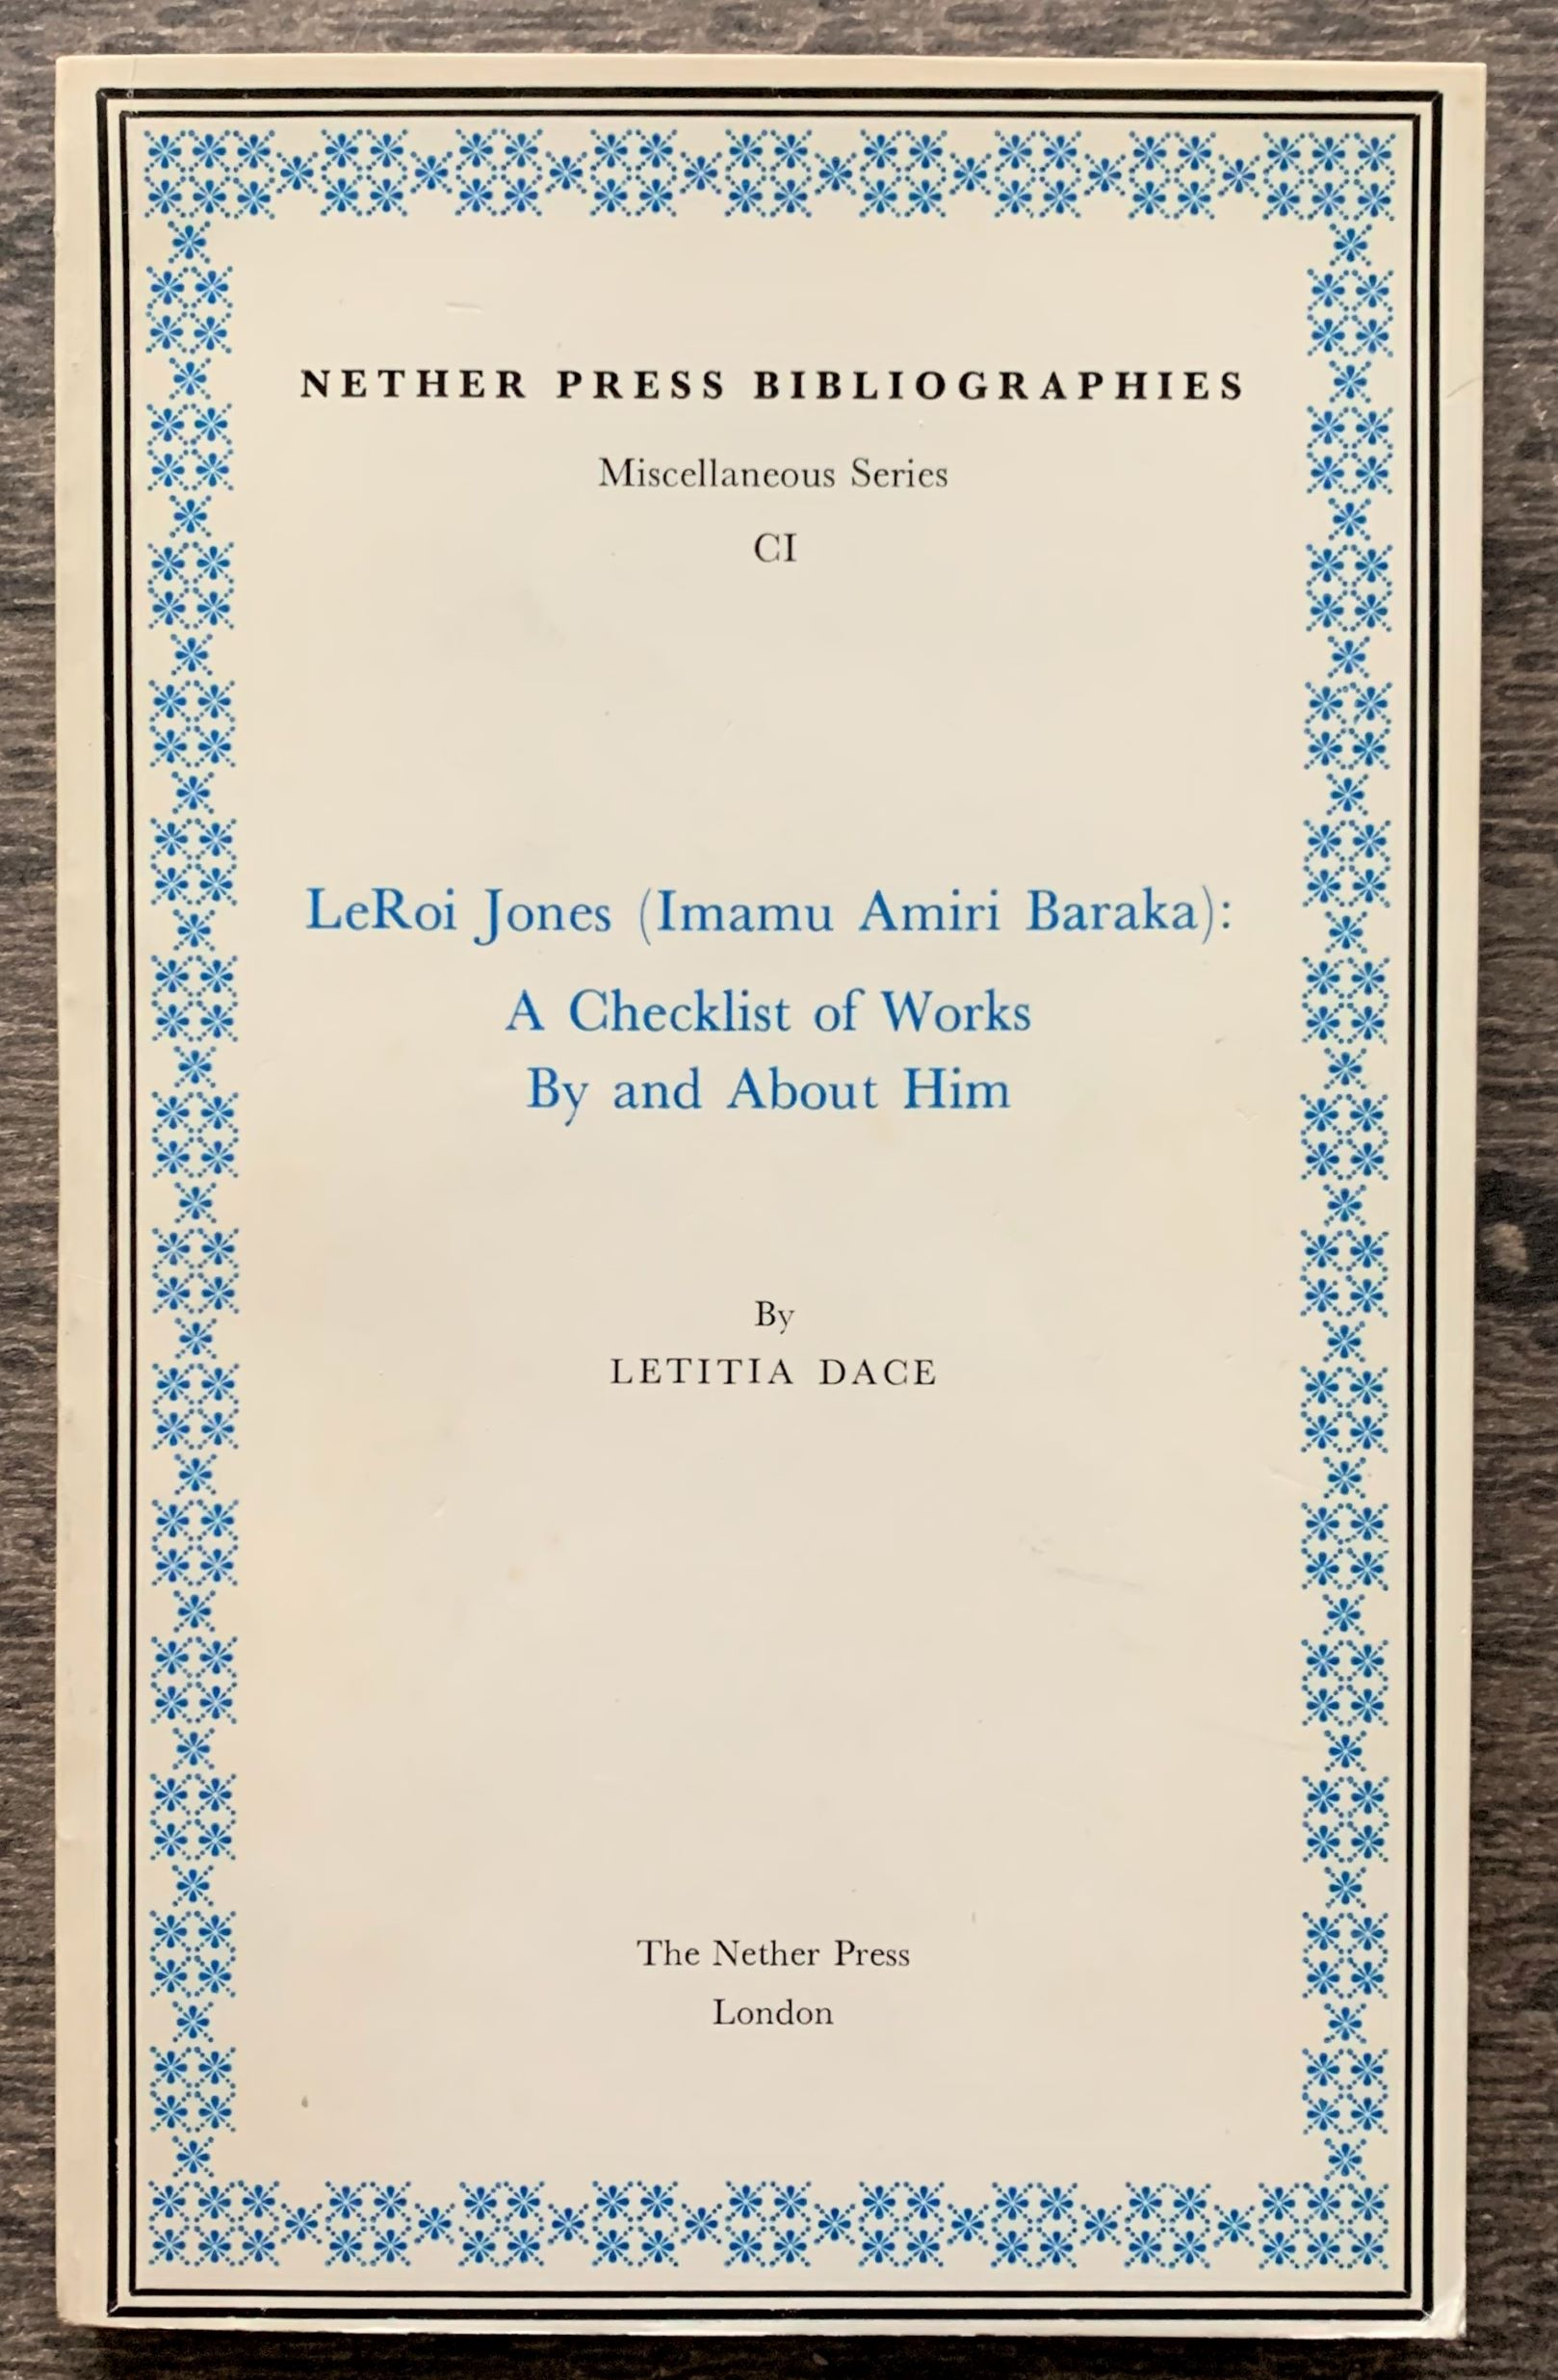 Image for LeRoi Jones (Imamu Amiri Baraka): A Checklist of Works By and About Him.